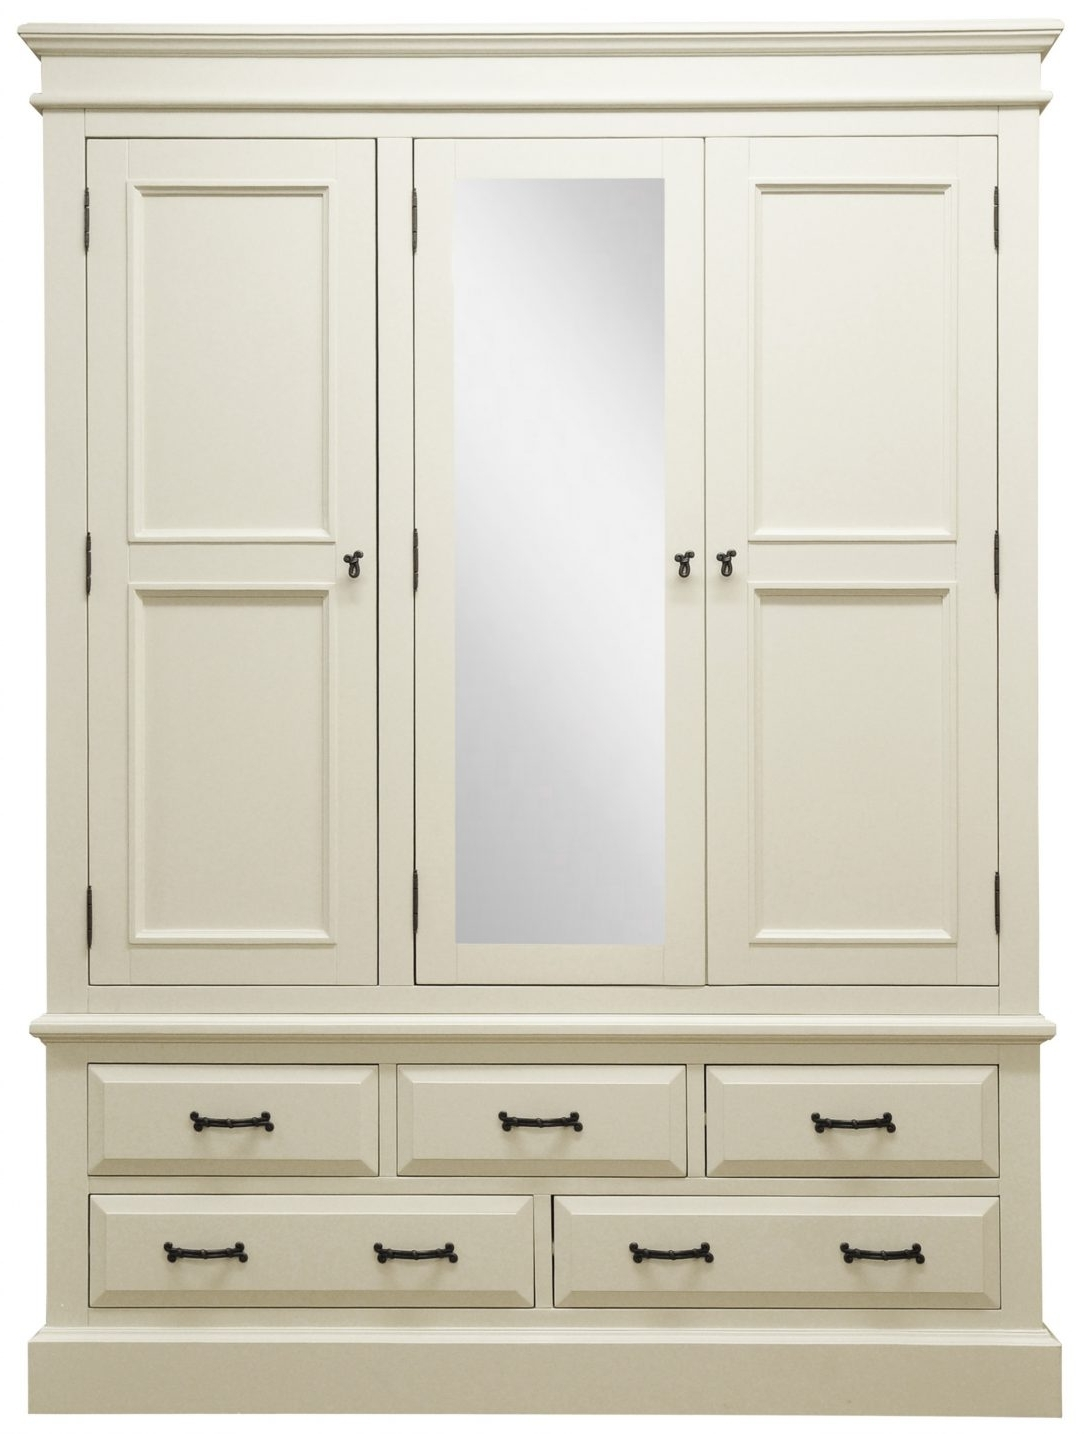 Fashionable White Wardrobes With Mirror Double Wardrobe Mirrored Sliding Doors With 4 Door Wardrobes With Mirror And Drawers (View 9 of 15)